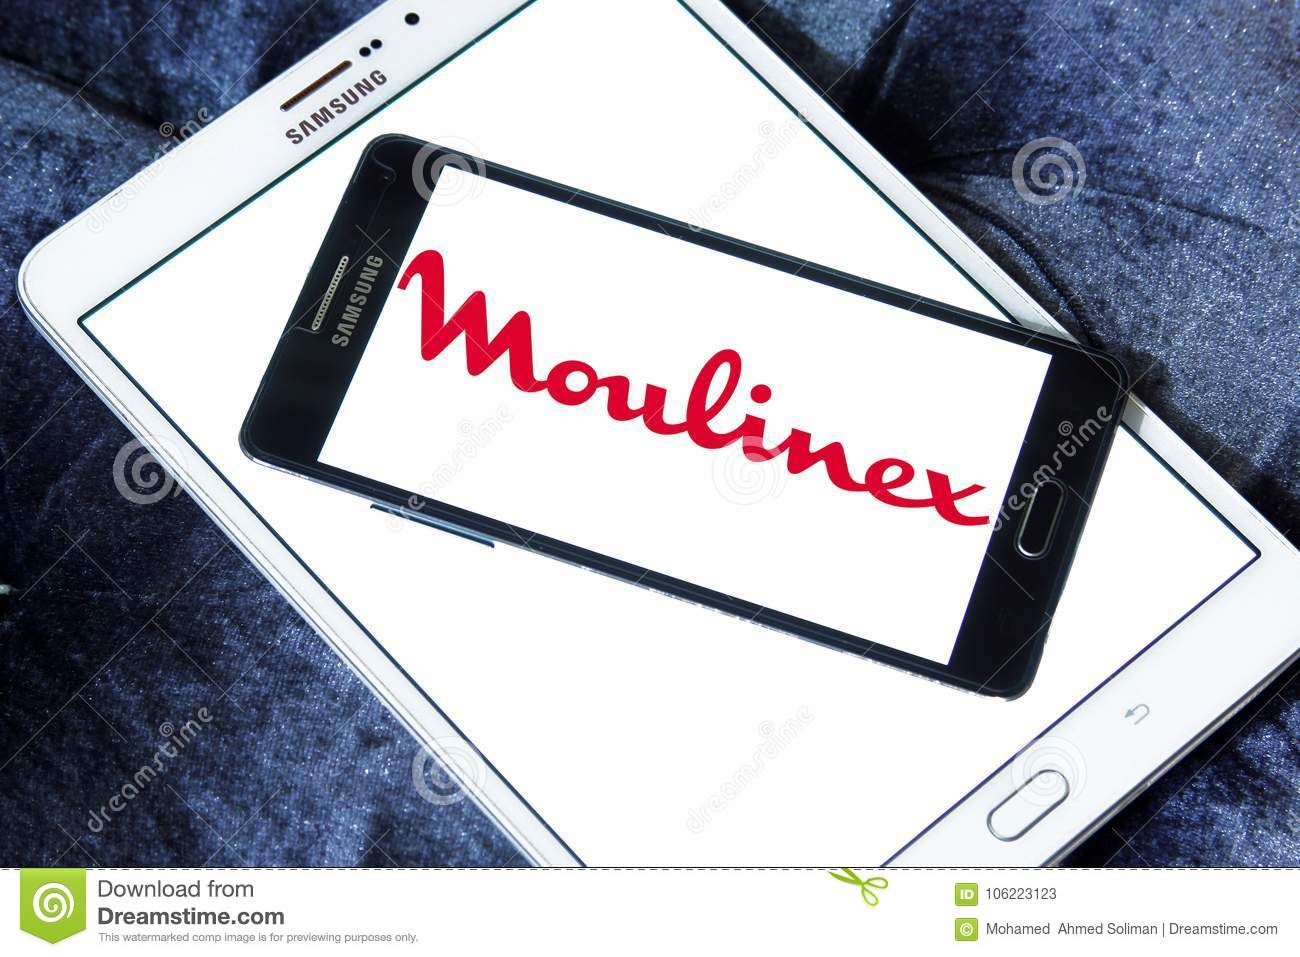 Moulinex company logo editorial stock photo  Image of companies